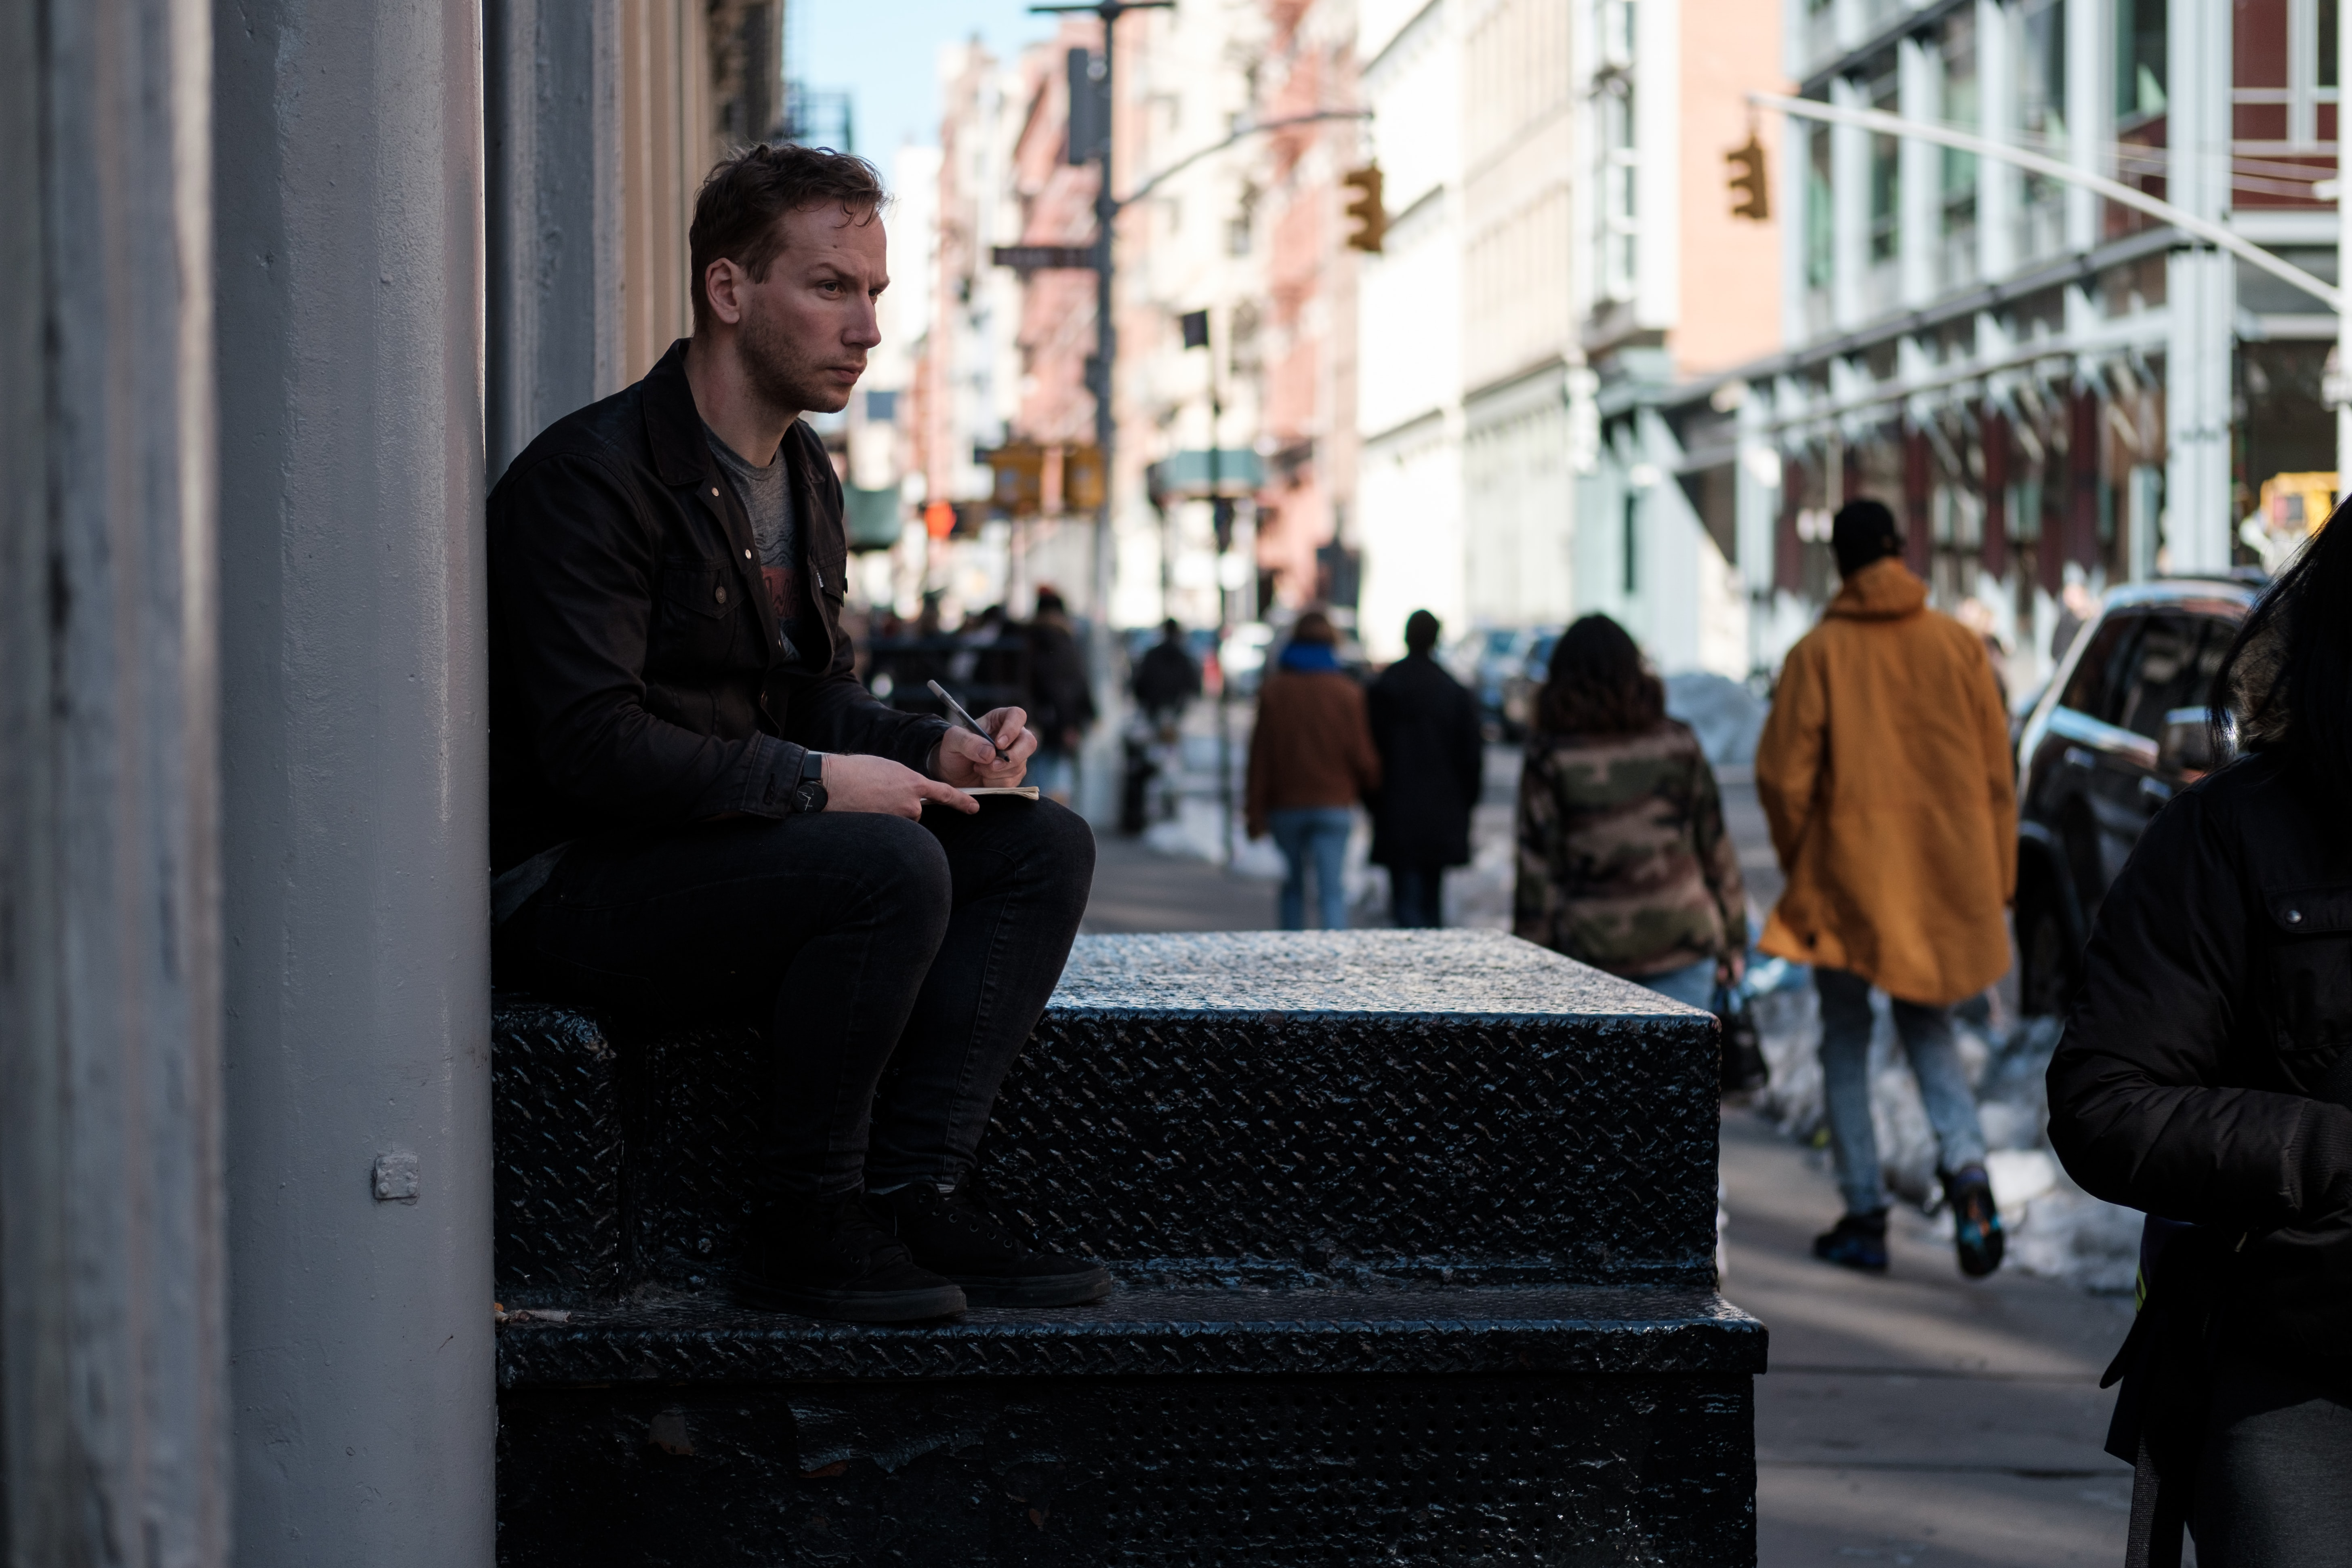 A man with a sketchpad sitting on stairs on a sidewalk